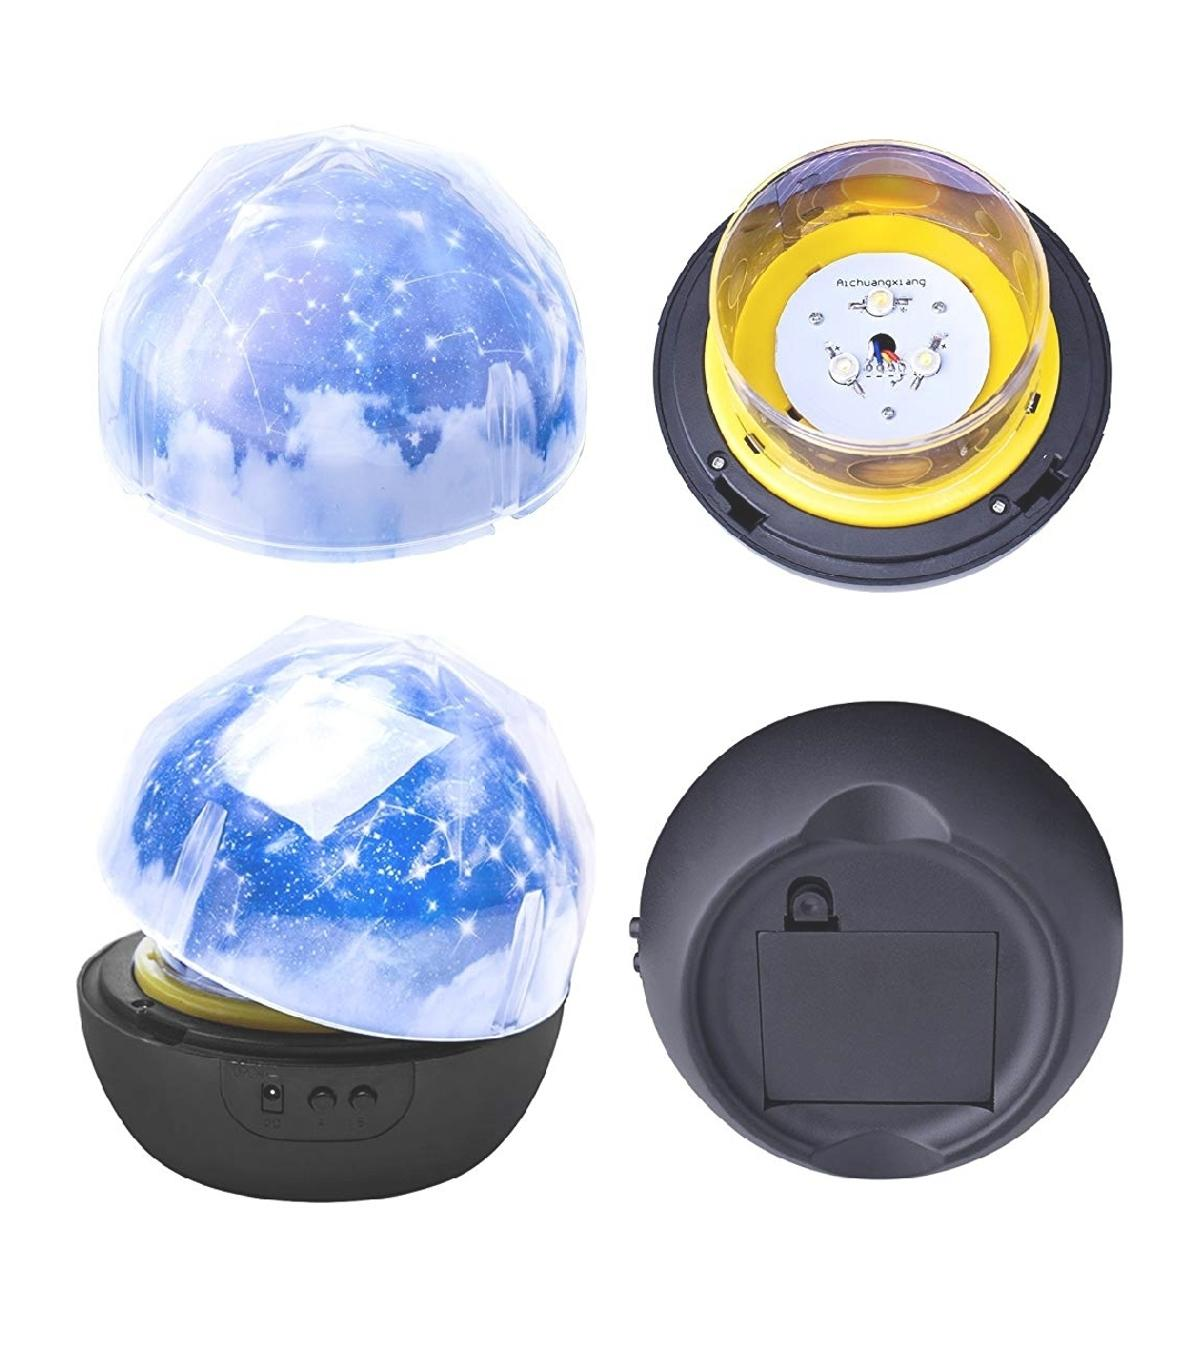 GLOBRITE PLANETARY PROJECTOR SOLAR LIGHA great night light. Can be used a lamp or a projector. The light can be changed to yellow, white and blue. 3 brightness levels. 3 vivid projector theme films. Project stars, the universe or a happy birthday message on to the walls and ceiling. Can be powered via USB or 3x AA batteries (not included) Chose between 3 lamp deigns: Moon  brand new boxed